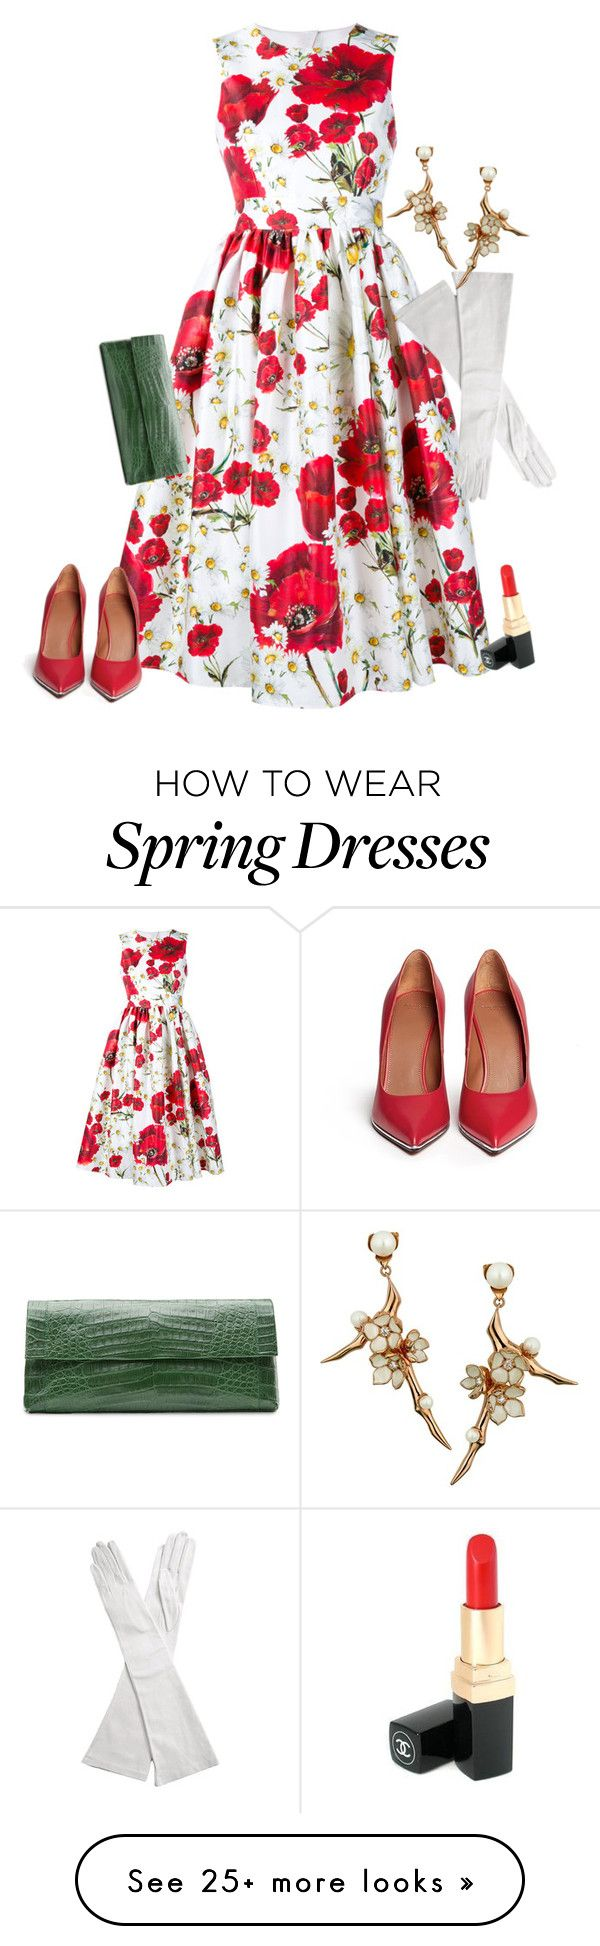 """Spring ball"" by winkiefingers on Polyvore featuring Dolce&Gabbana, Givenchy, Nancy Gonzalez, Chanel and Shaun Leane"